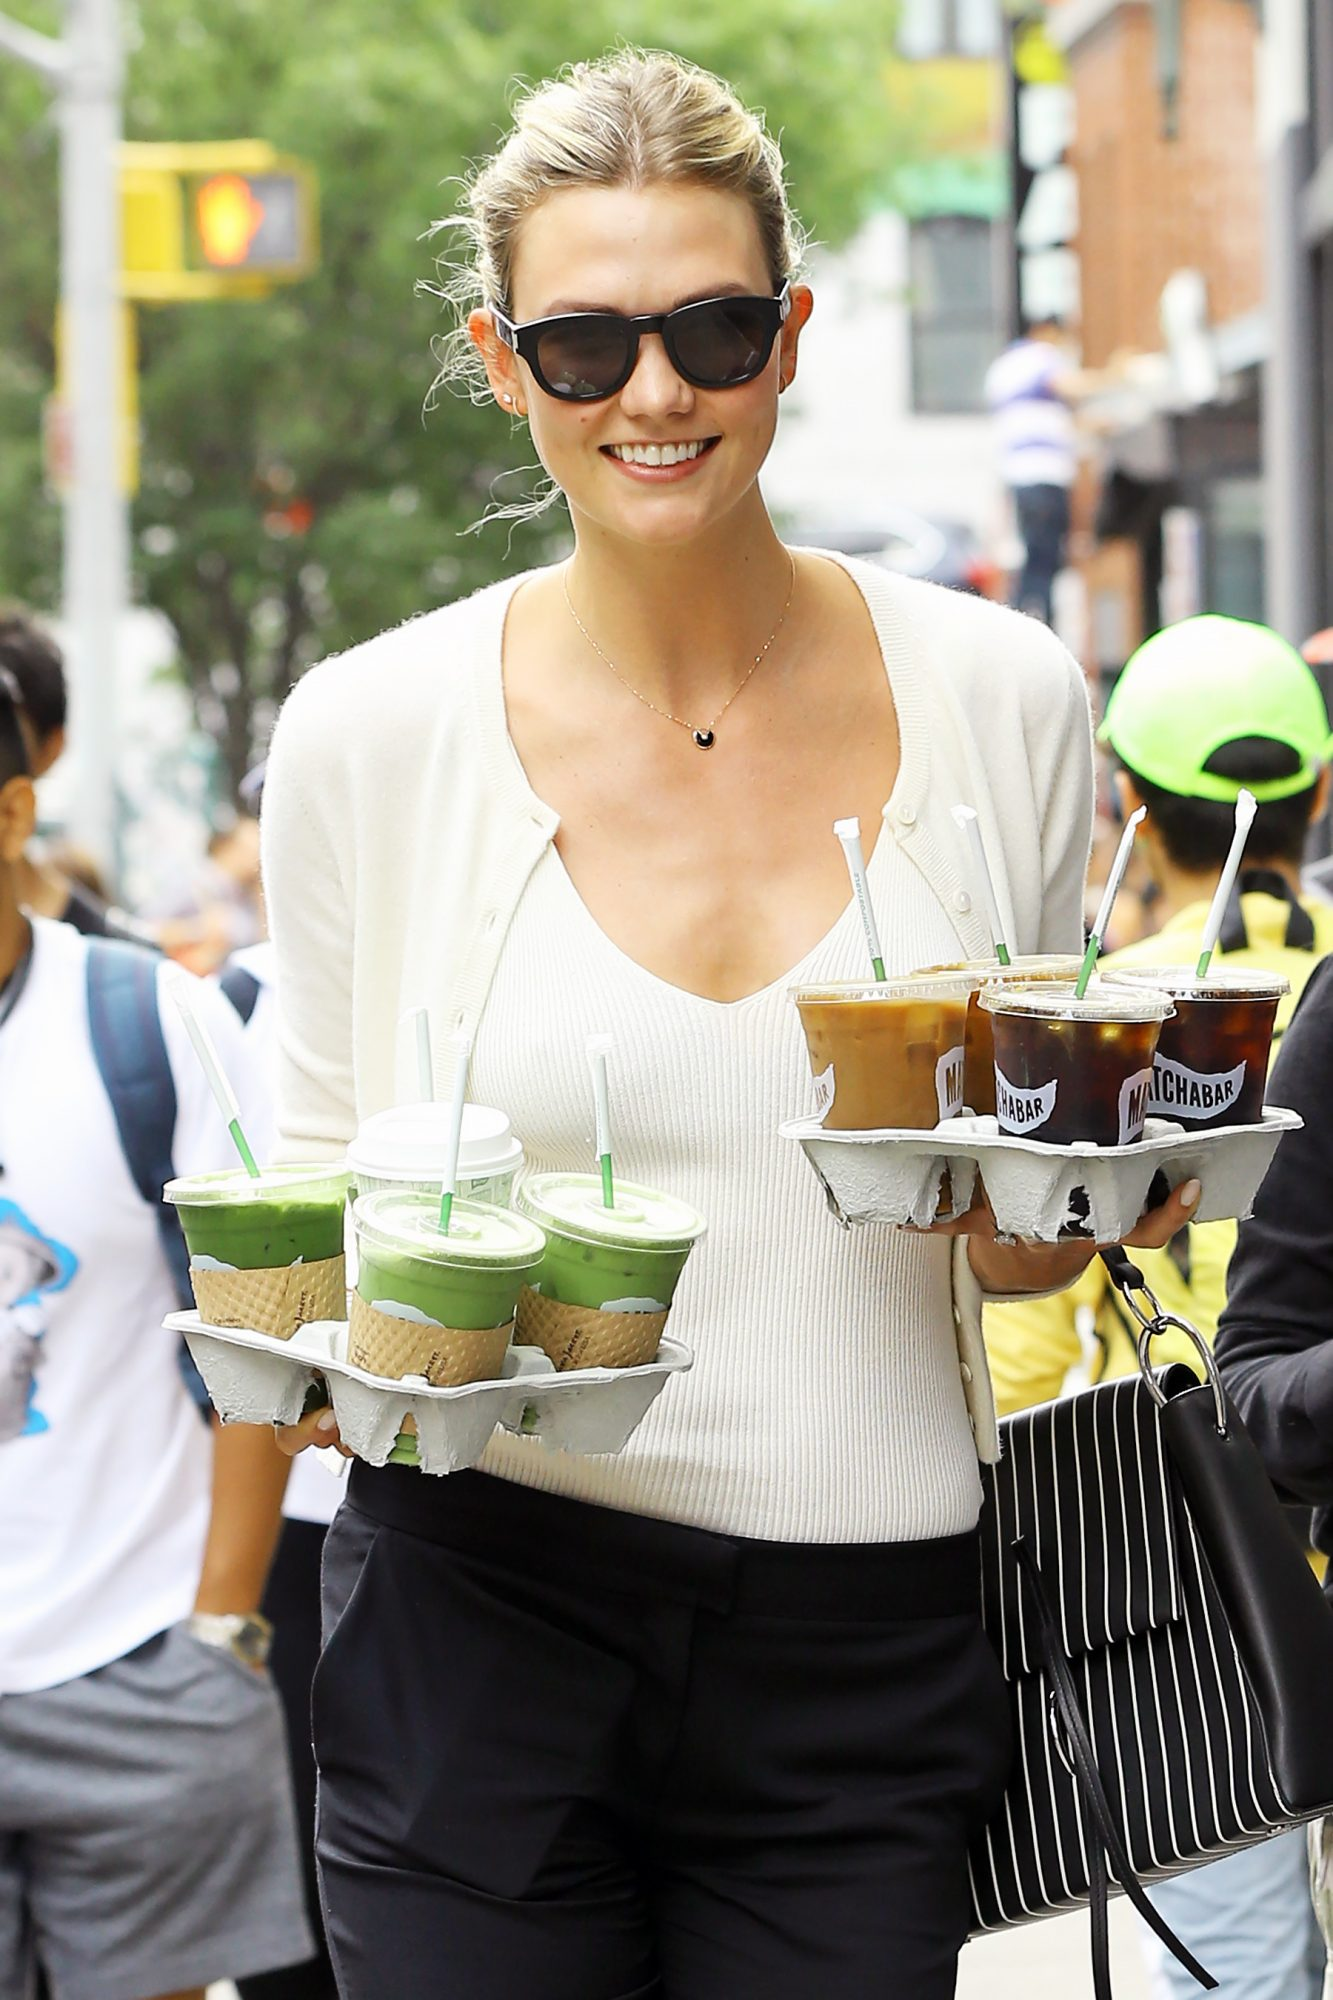 EXCLUSIVE: Model Karlie Kloss plays CEO morning 'coffee girl' carrying two trays of drinks for her Kode With Klossy staff in NYC